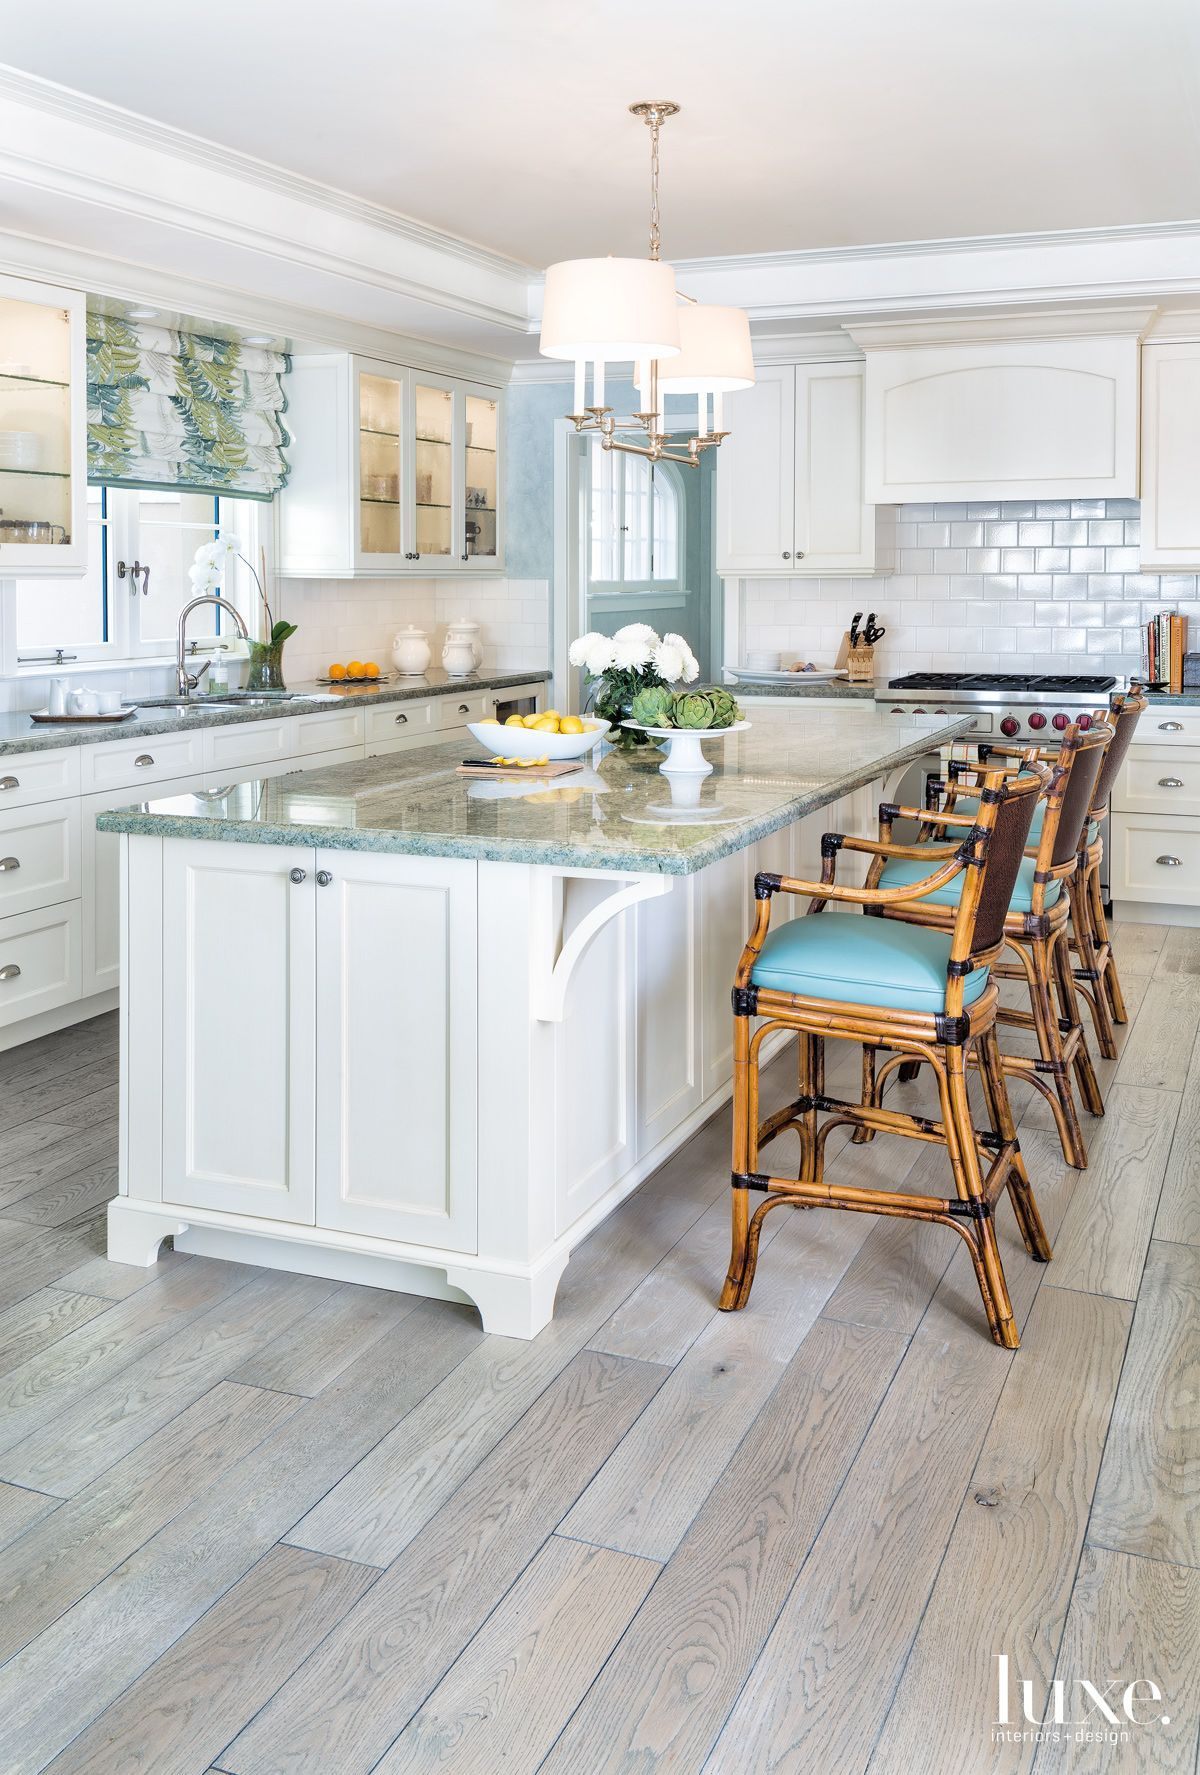 Coastal Kitchen Ideas. Coastal Kitchen | Allison Paladino Interior Design  Ideas Pinterest